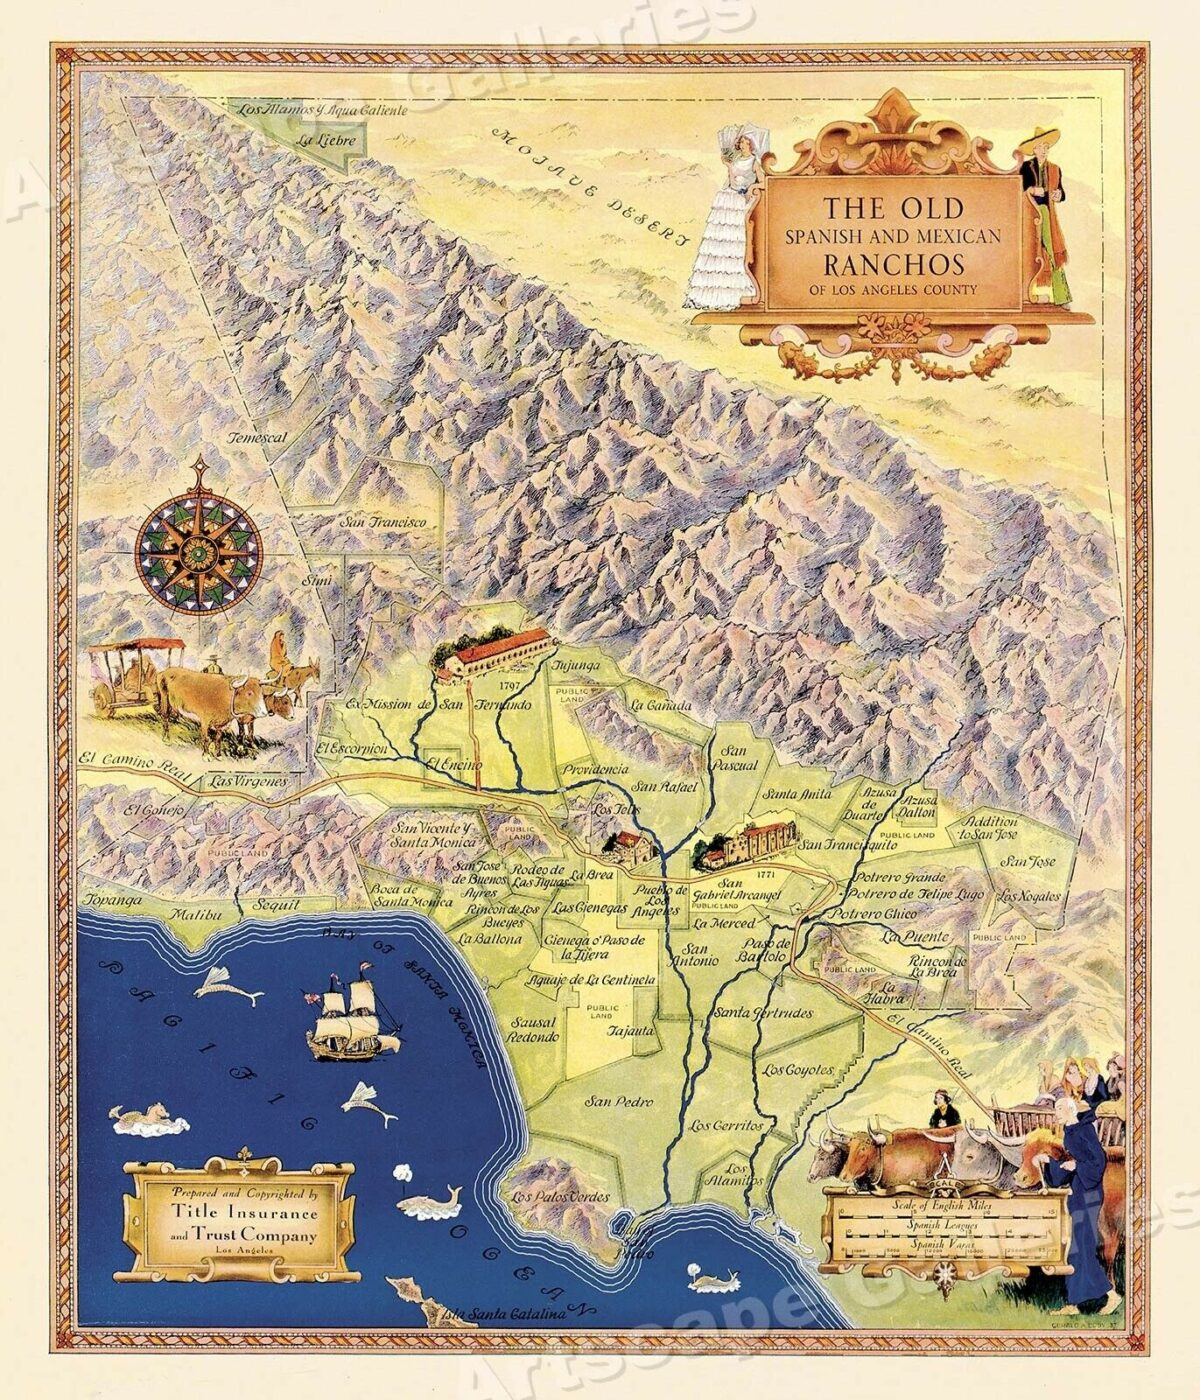 1930s Old Spanish Ranchos Map of Los Angeles - 24x28